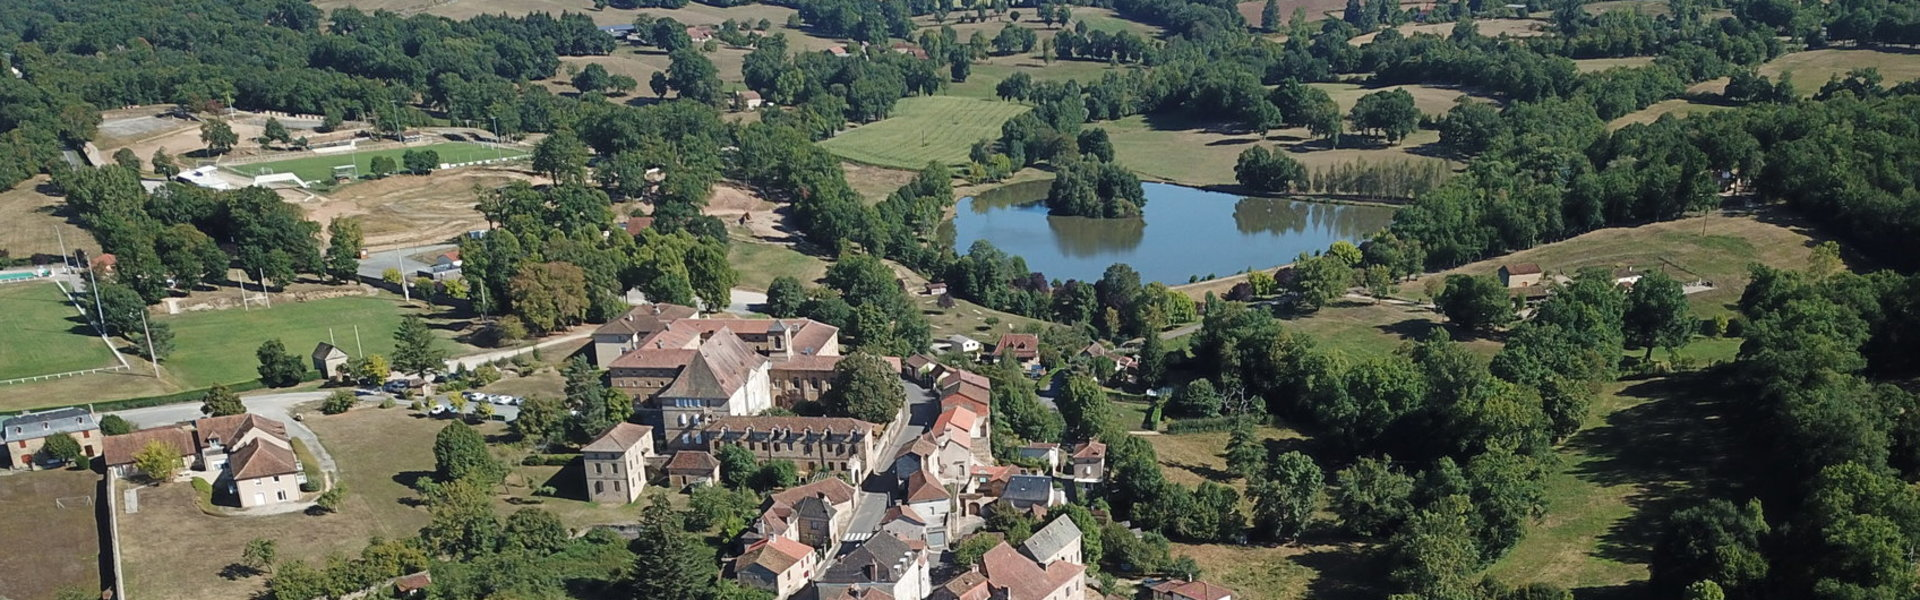 Mairie Commune Municipal Château Lot Quercy Occitanie Massif Central